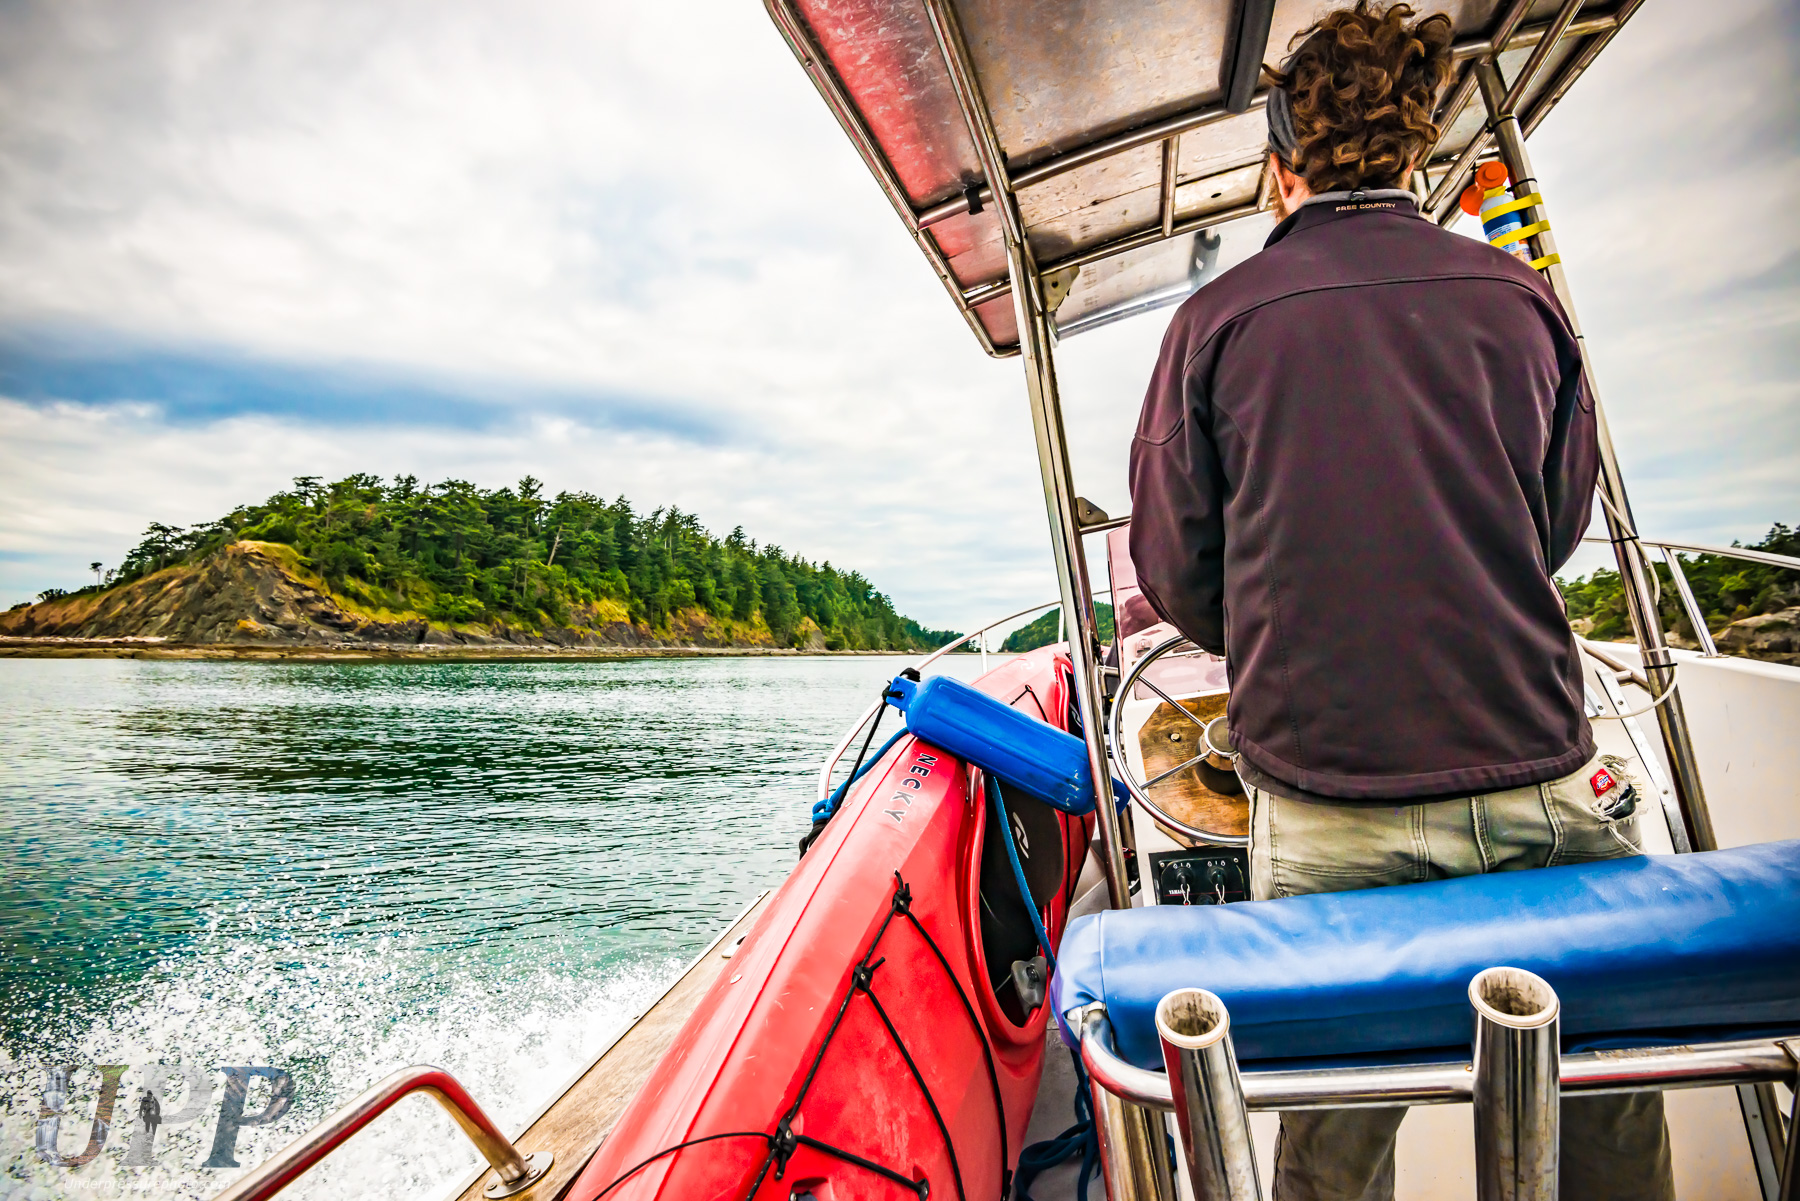 We arrive at Sucia Island with Captain Benson